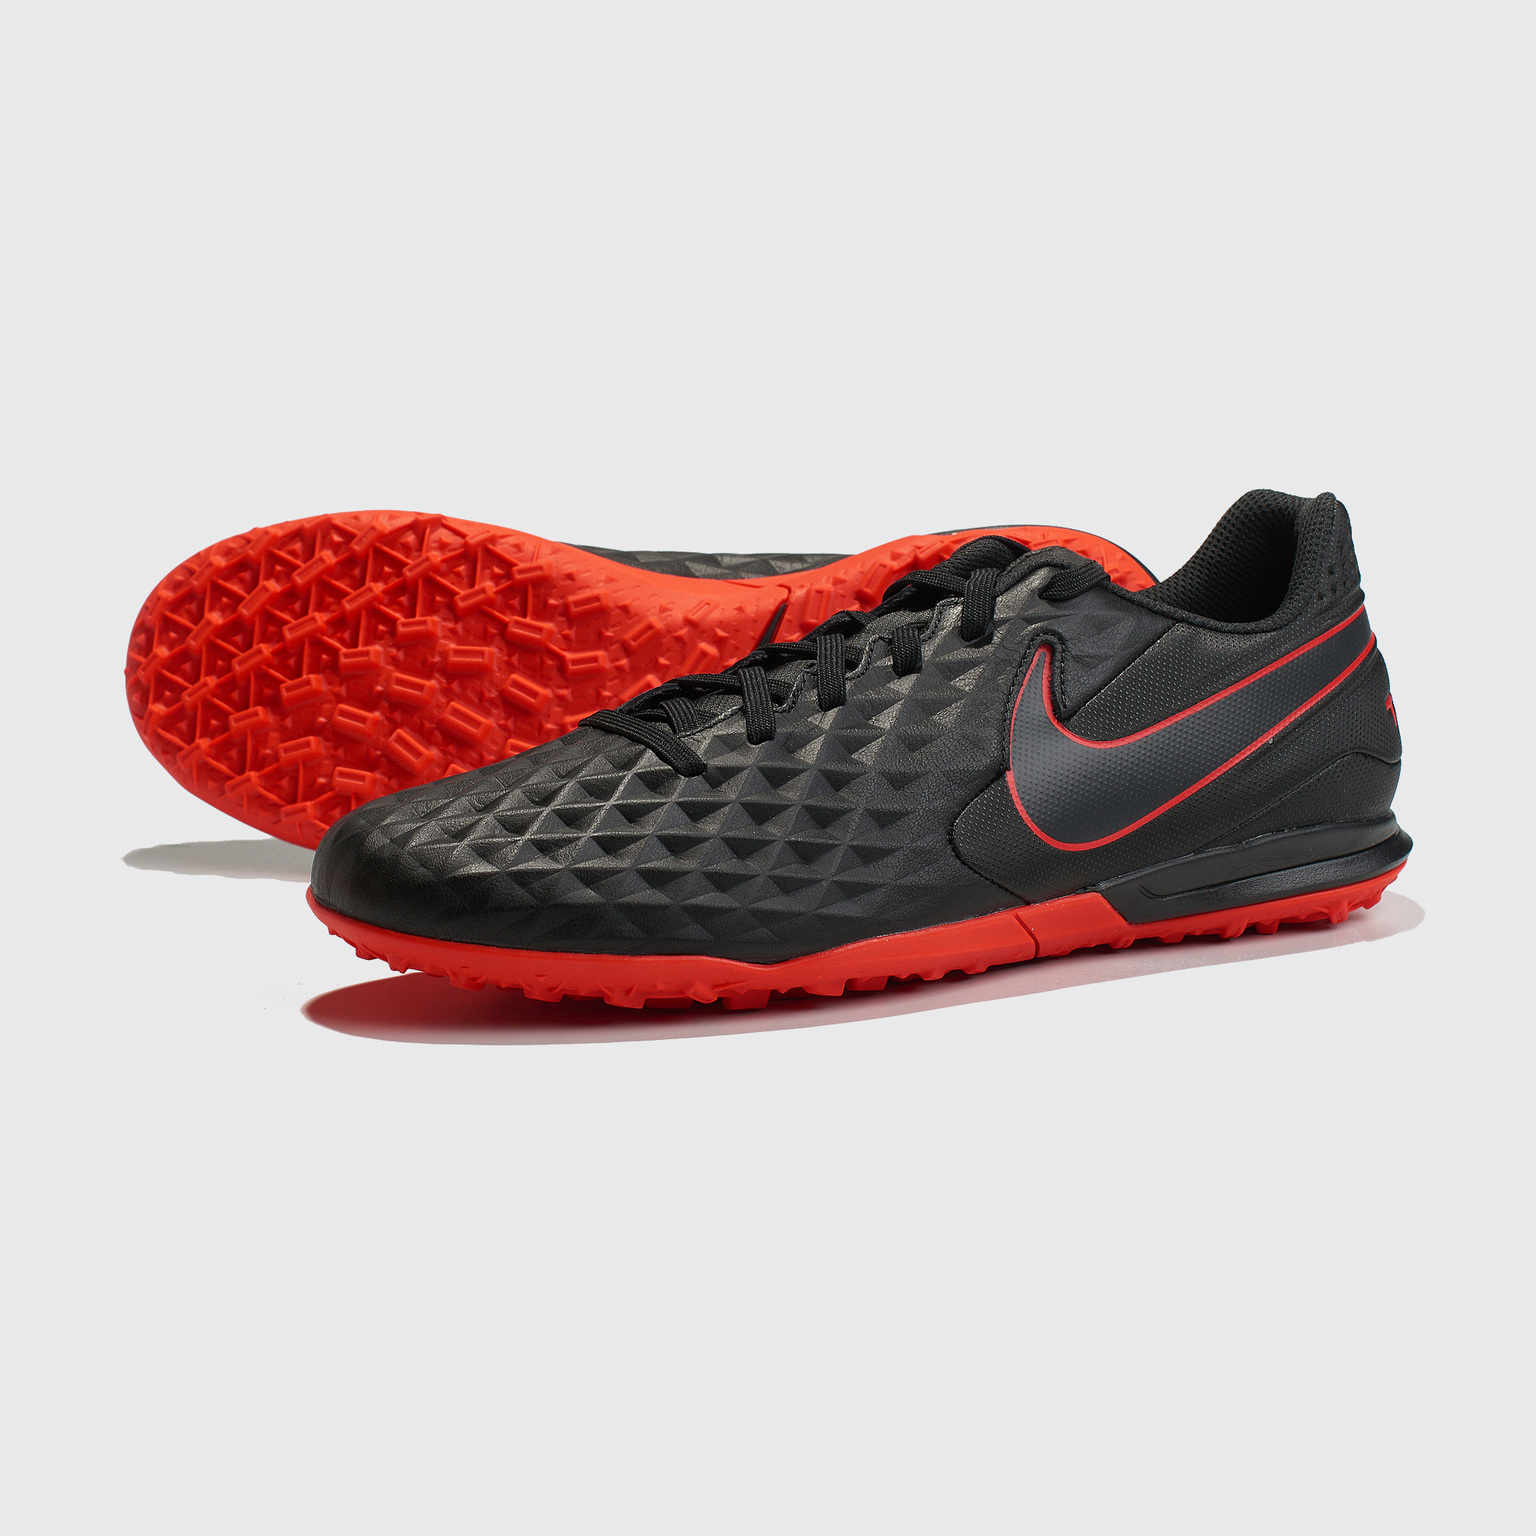 Шиповки Nike Legend 8 Academy TF AT6100-060 шиповки детские nike legend 8 academy tf at5736 606